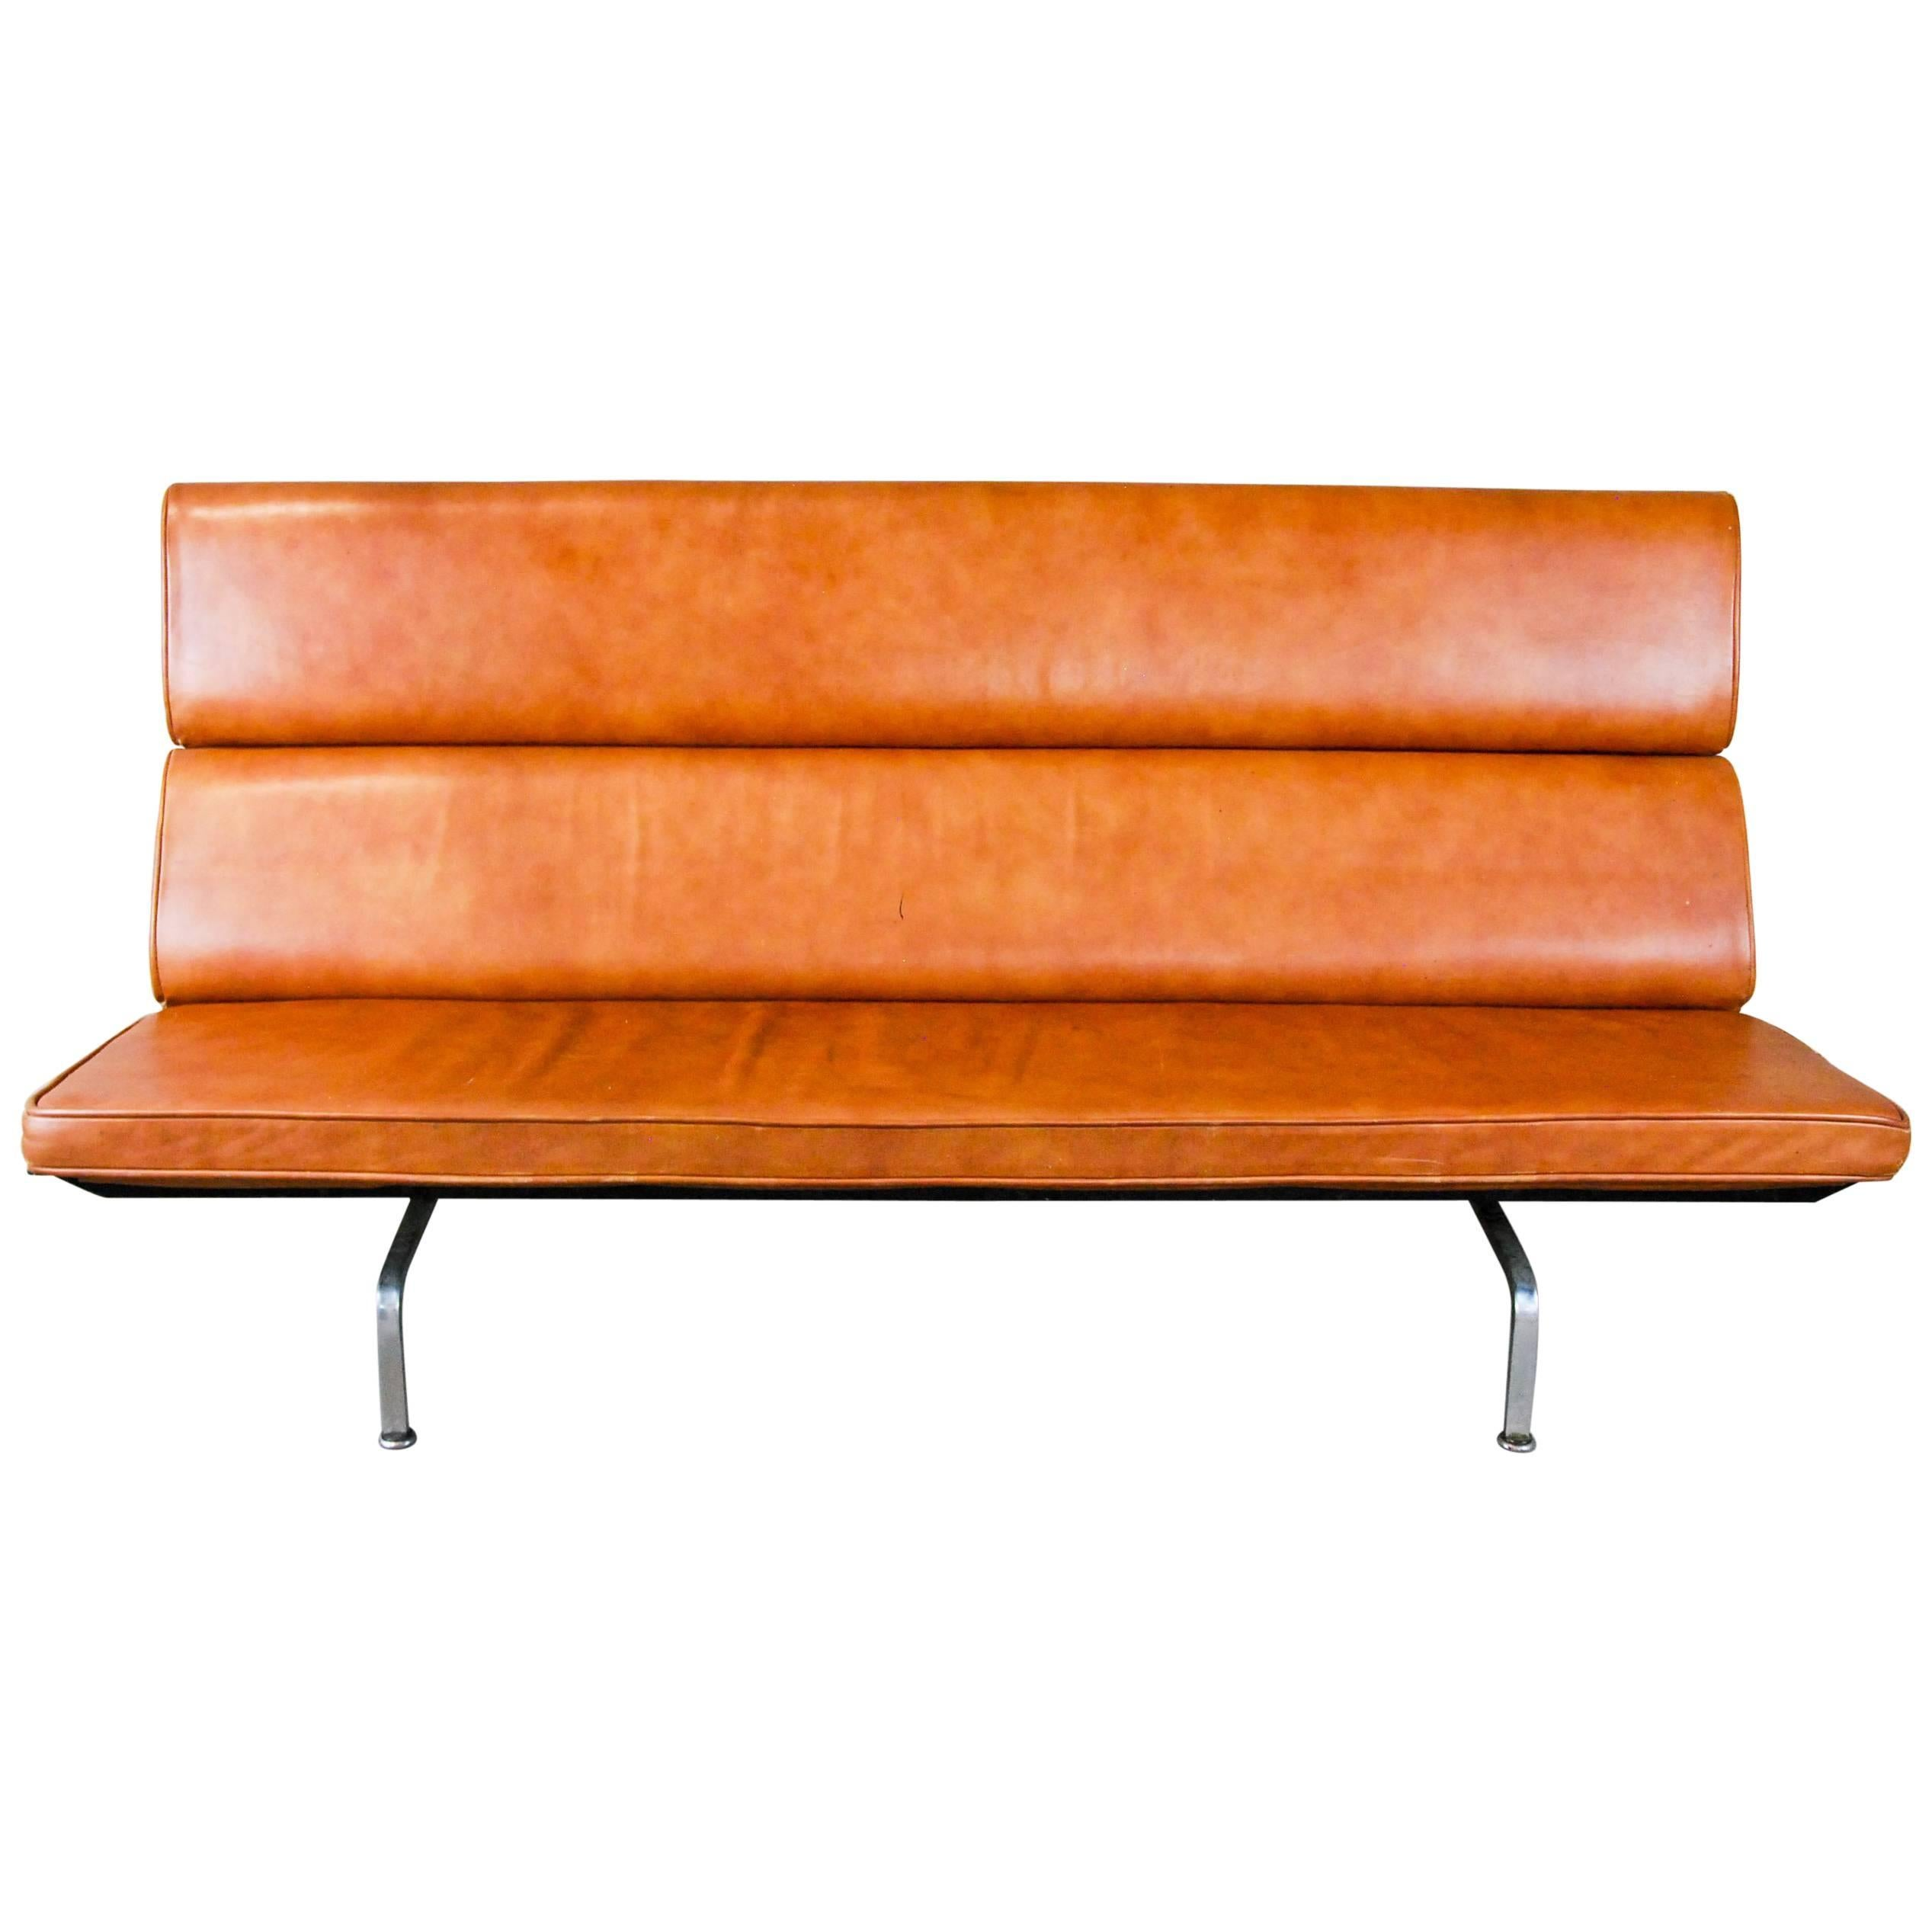 Charles And Ray Eames For Herman Miller Sofa Compact Couch 1